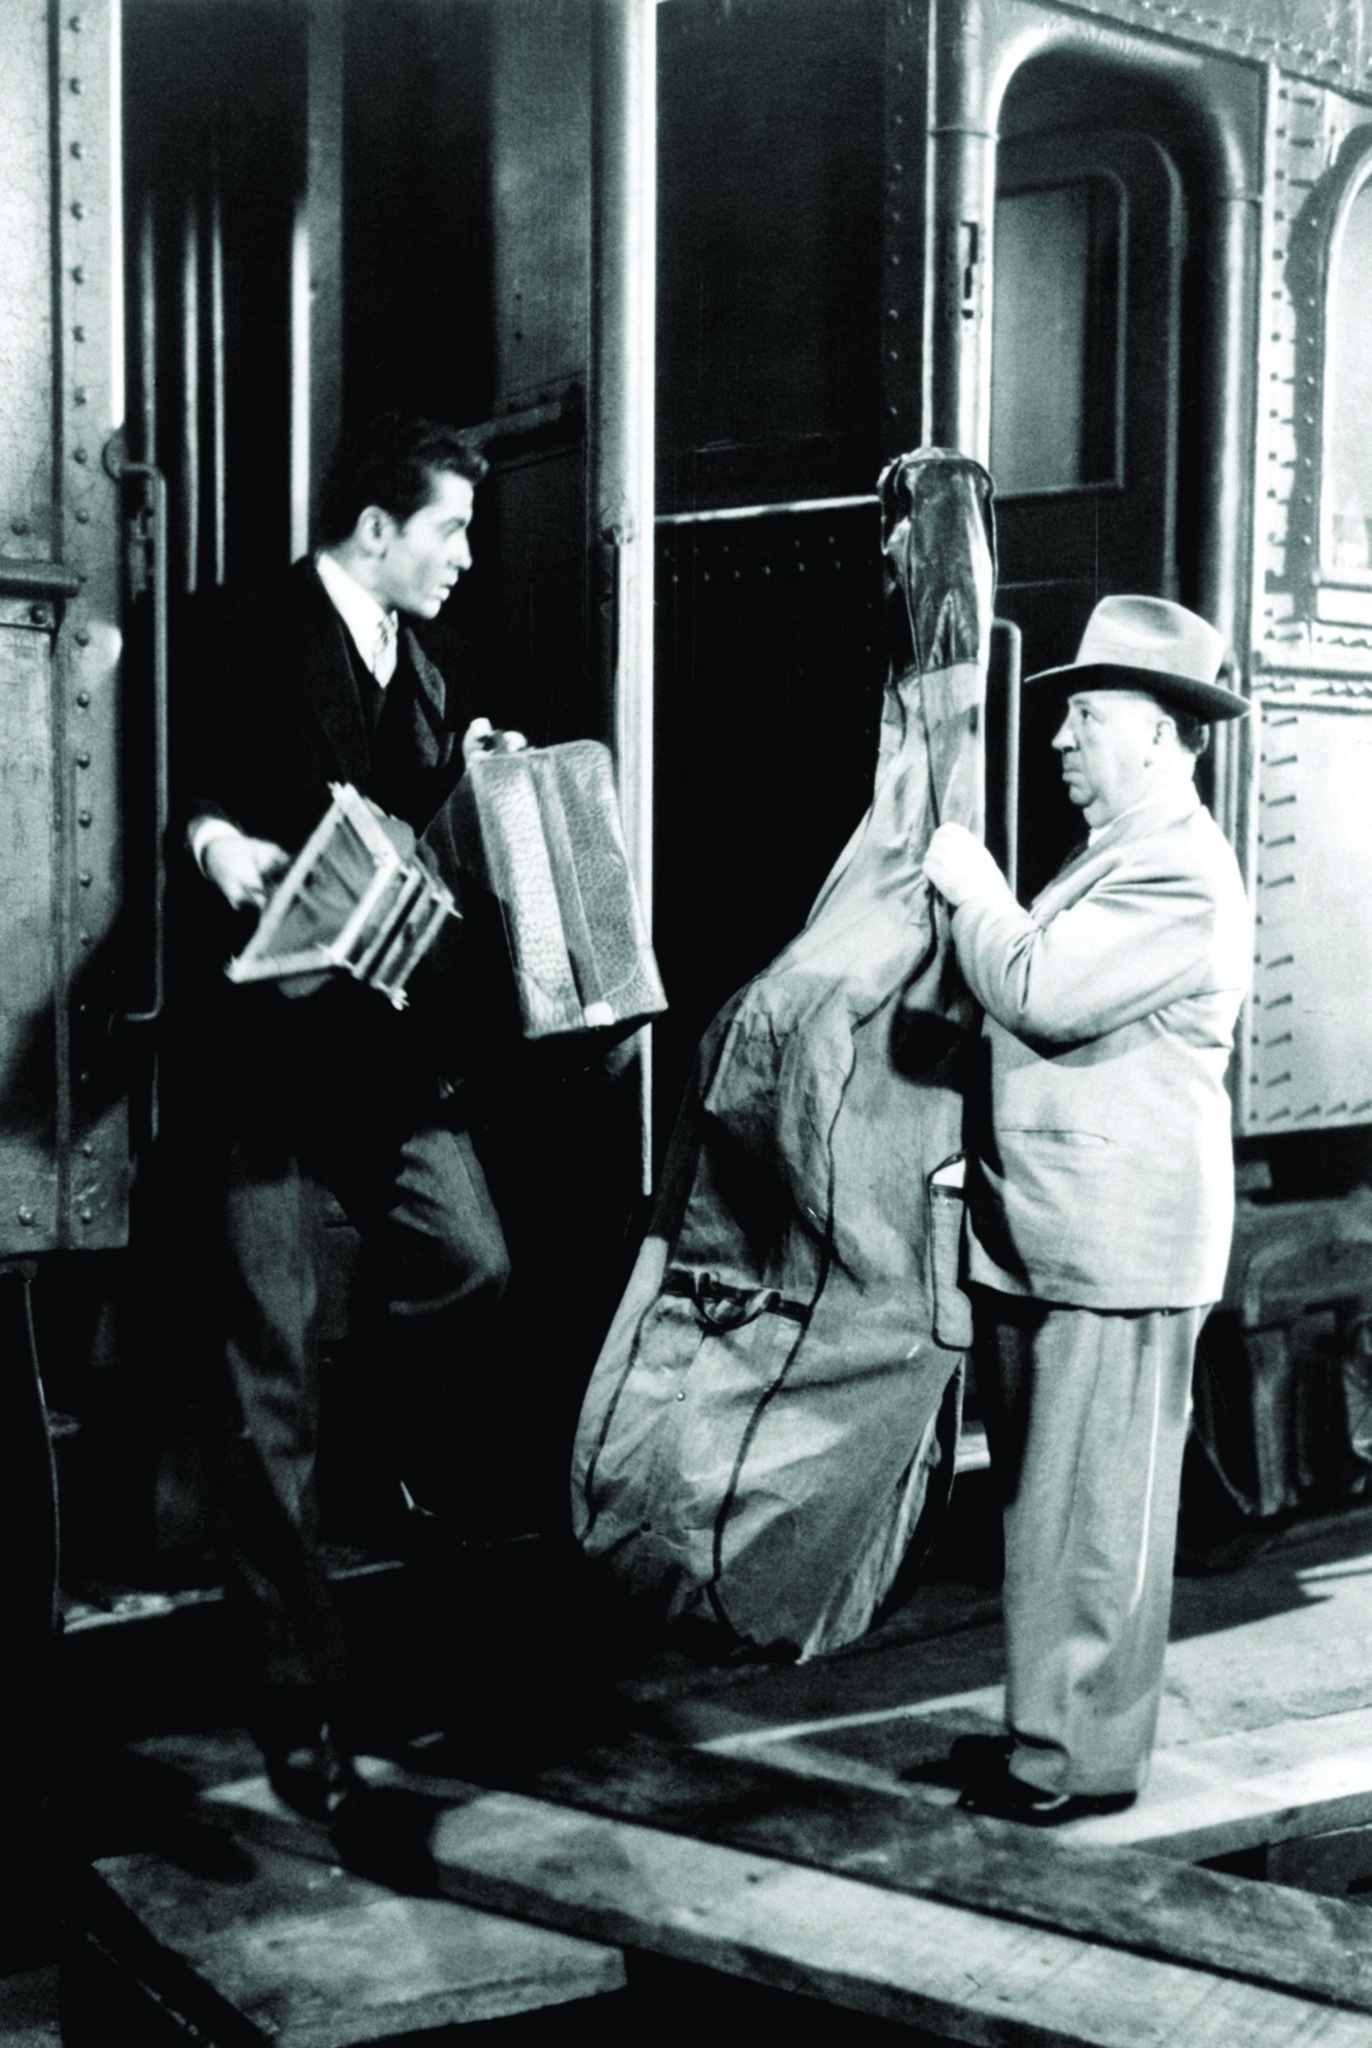 Alfred Hitchcock and Farley Granger in Strangers on a Train (1951)